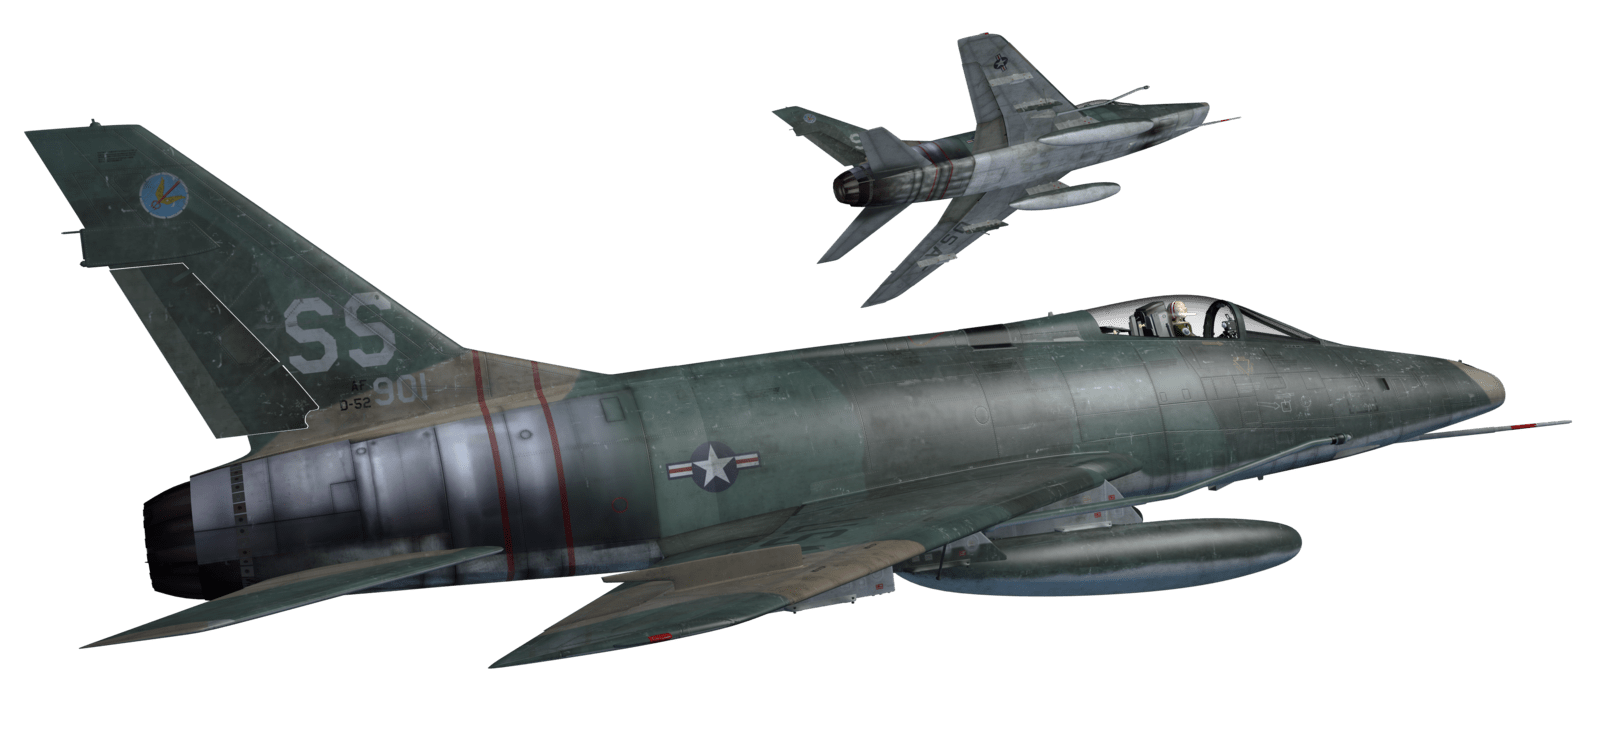 Jet Fighter Aircraft PNG Images Free Download